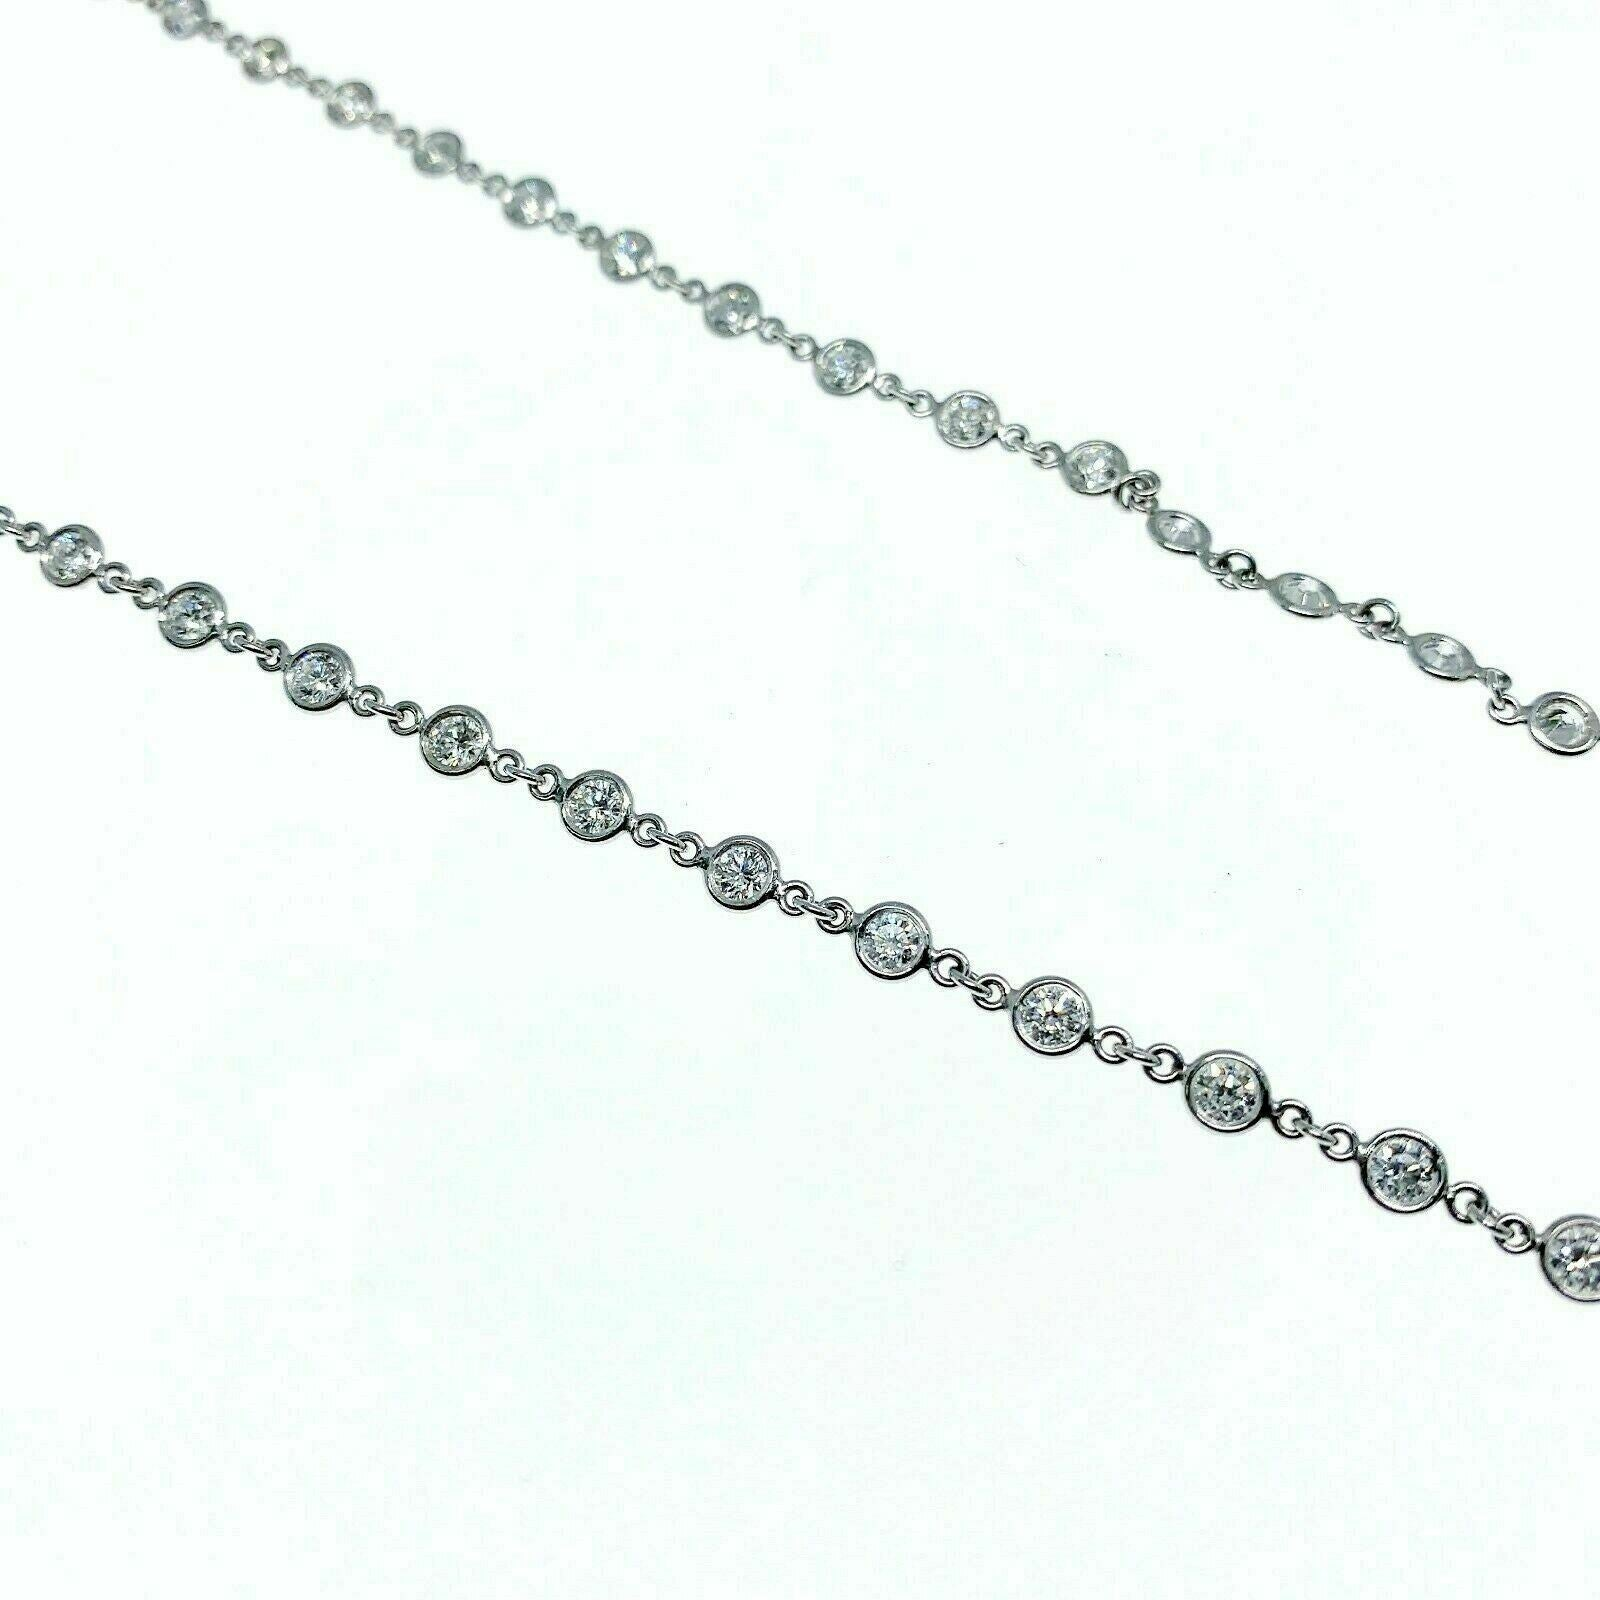 Estate 9.60 Carats t.w. E- F Color VS Diamond Handwire Diamond by The Yard Plat